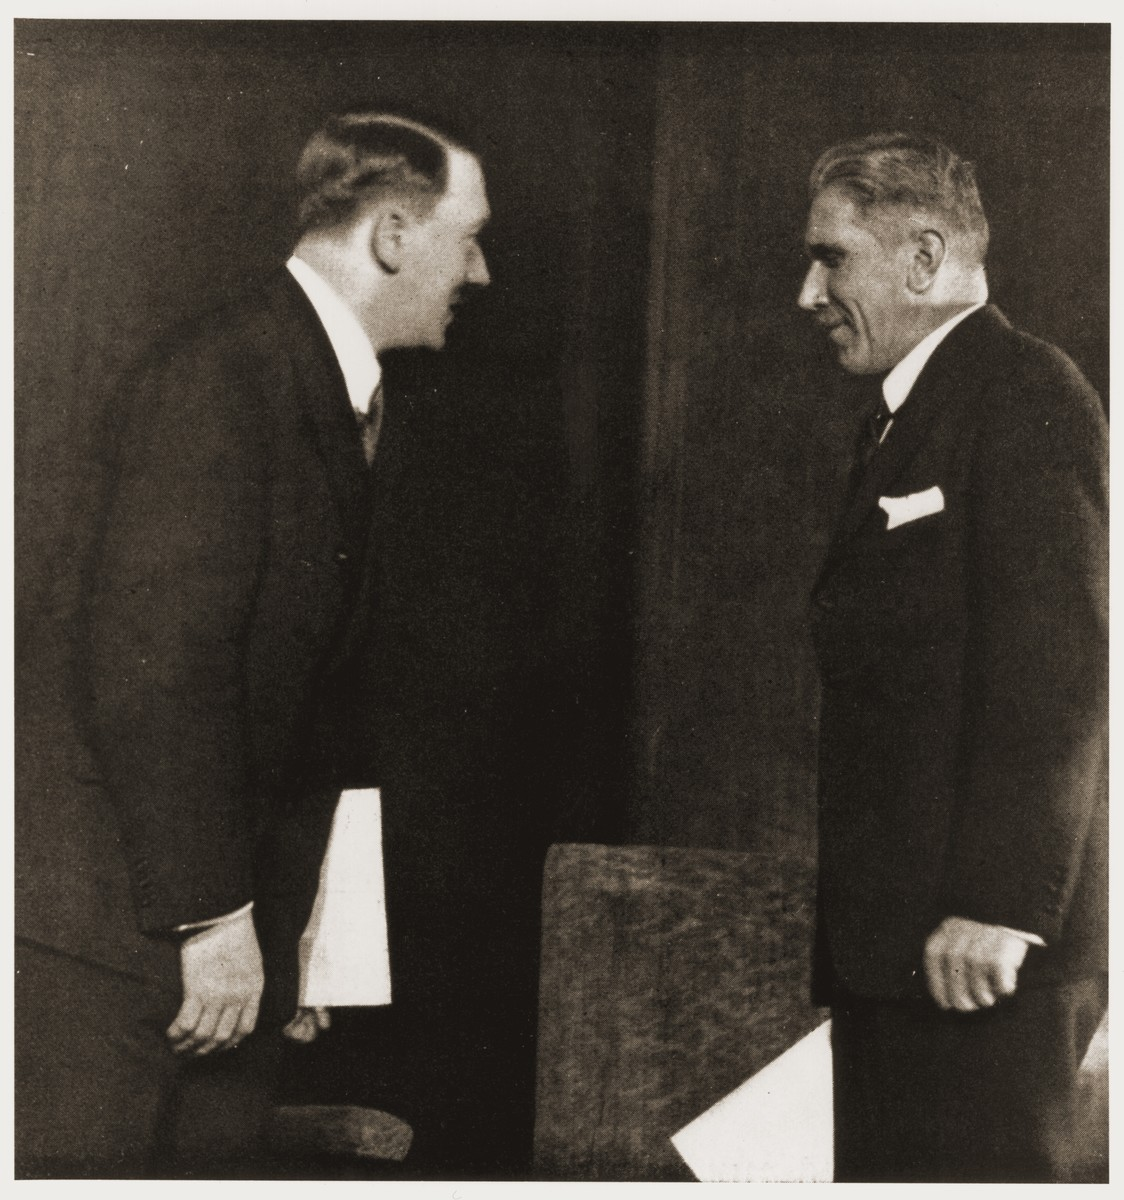 Adolf Hitler converses with Franz von Papen in the Reich chancellery at the first meeting of Hitler's new cabinet.